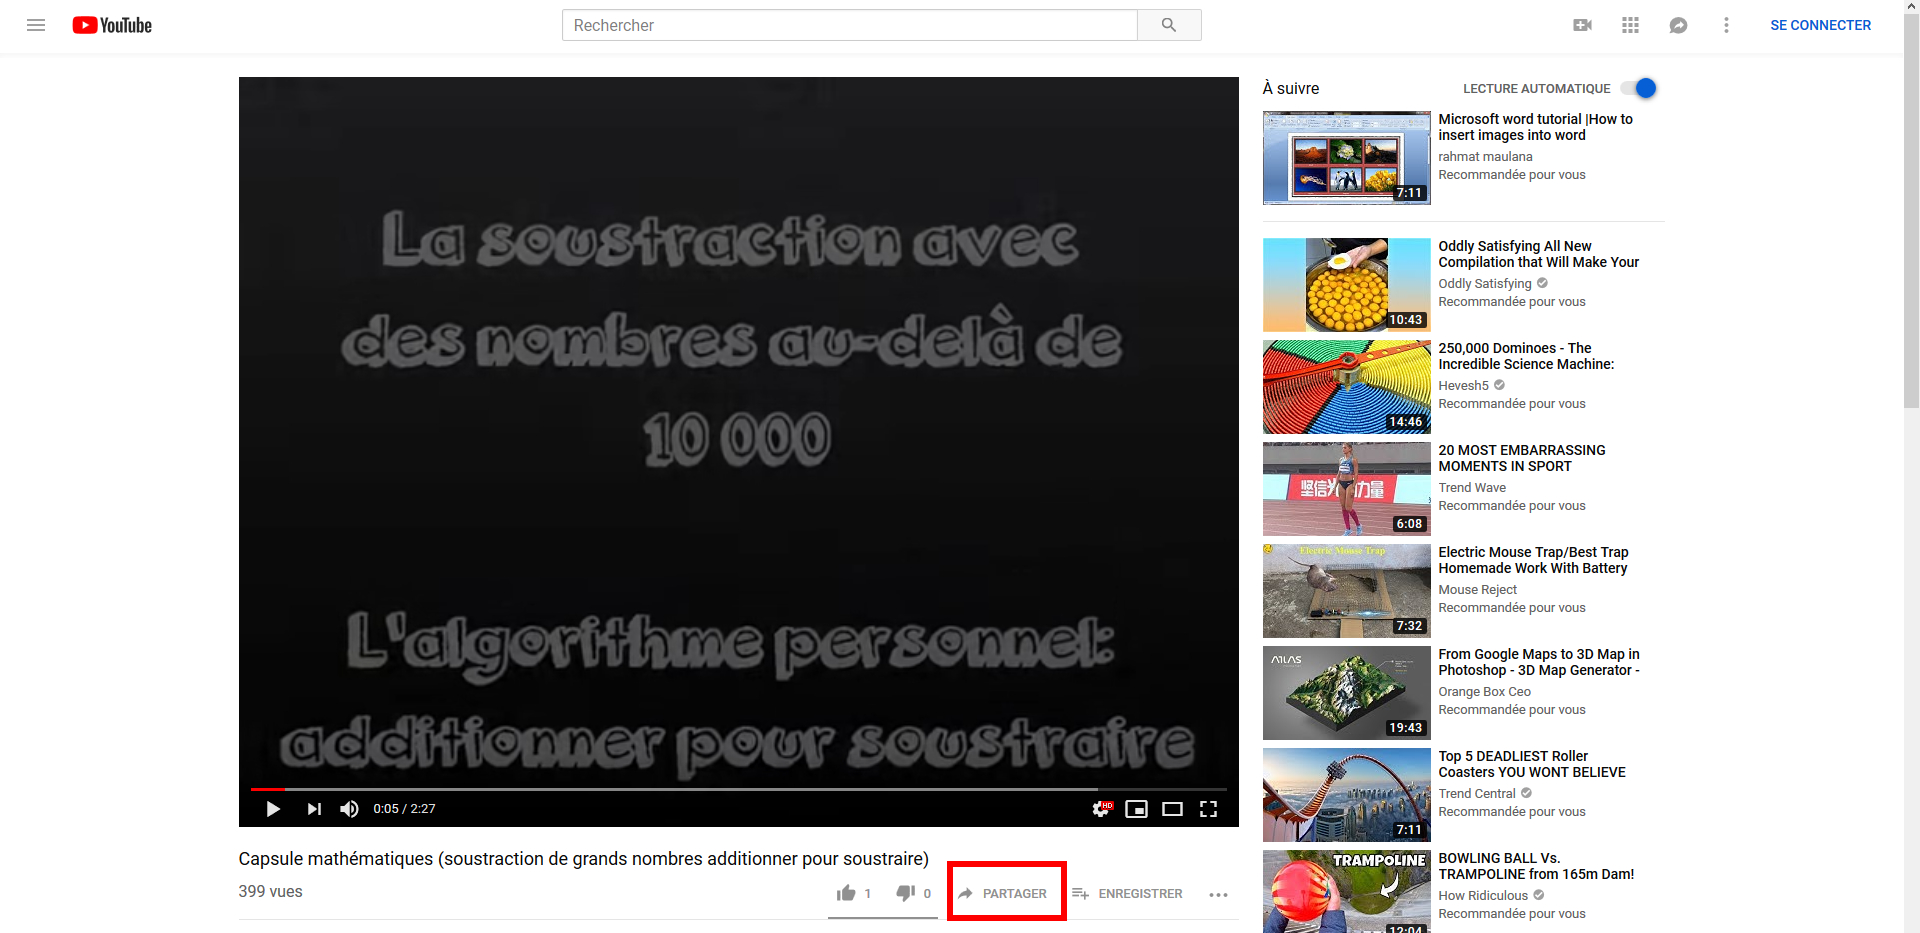 Bouton Partager dans Youtube